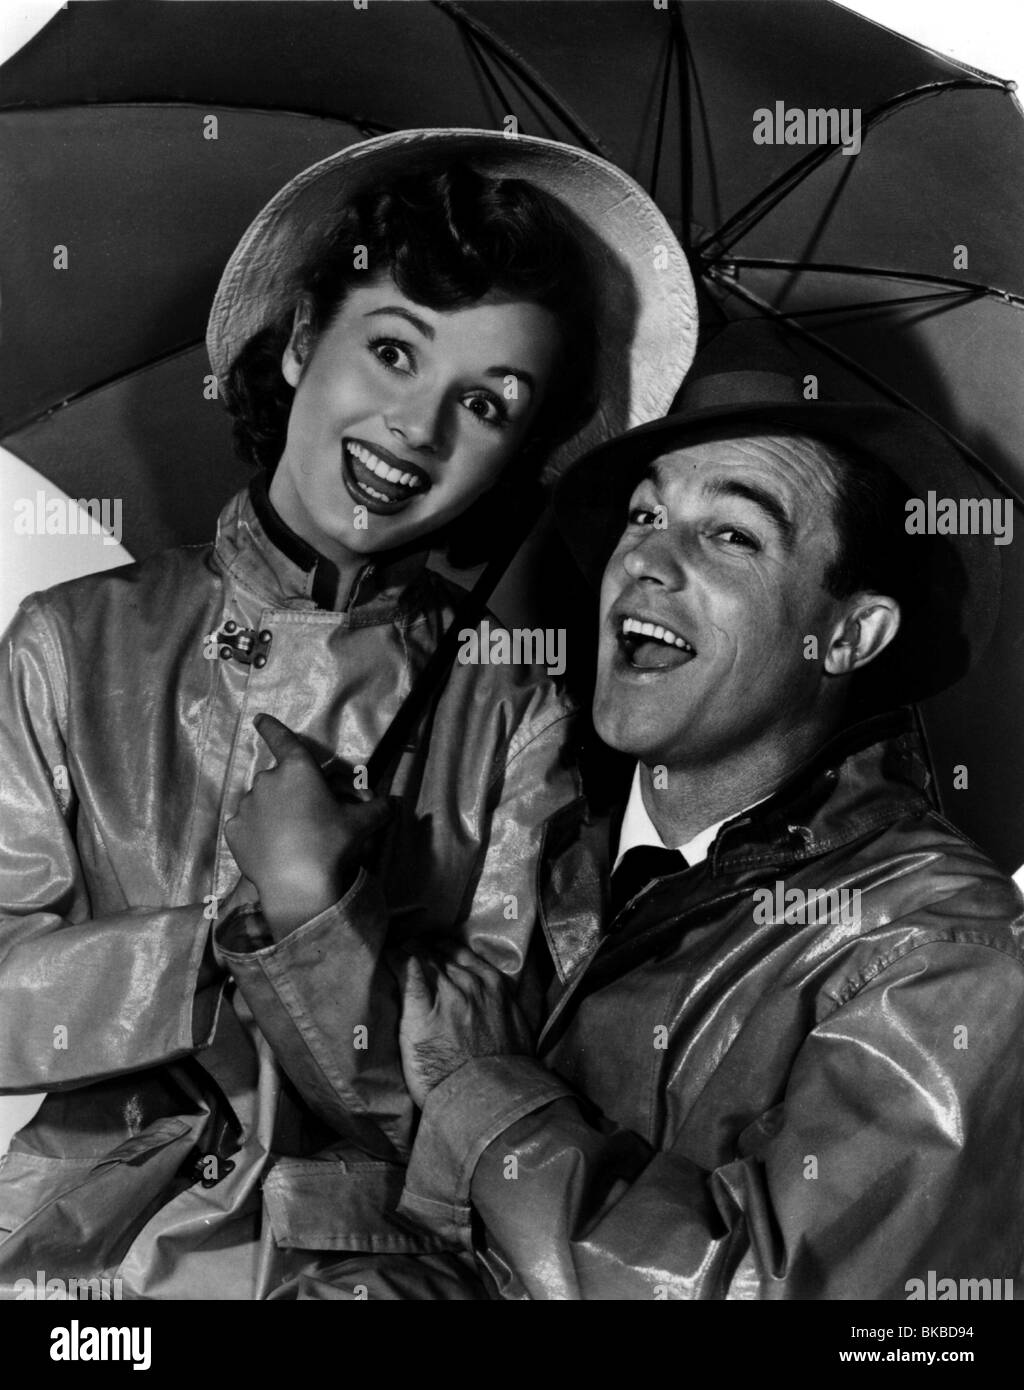 SINGIN IN THE RAIN 1952 SINGING IN THE RAIN ALT DEBBIE